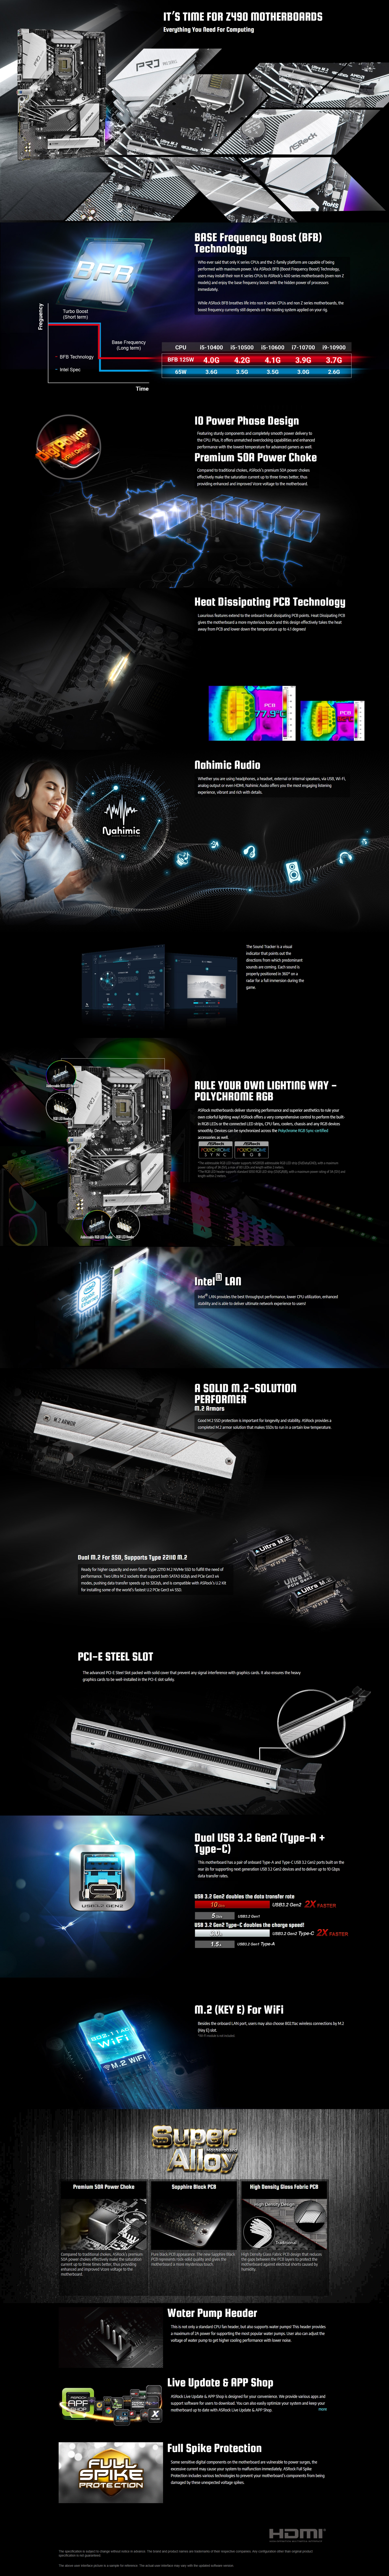 A large marketing image providing additional information about the product ASRock Z490 Pro4 LGA1200 ATX Desktop Motherboard - Additional alt info not provided